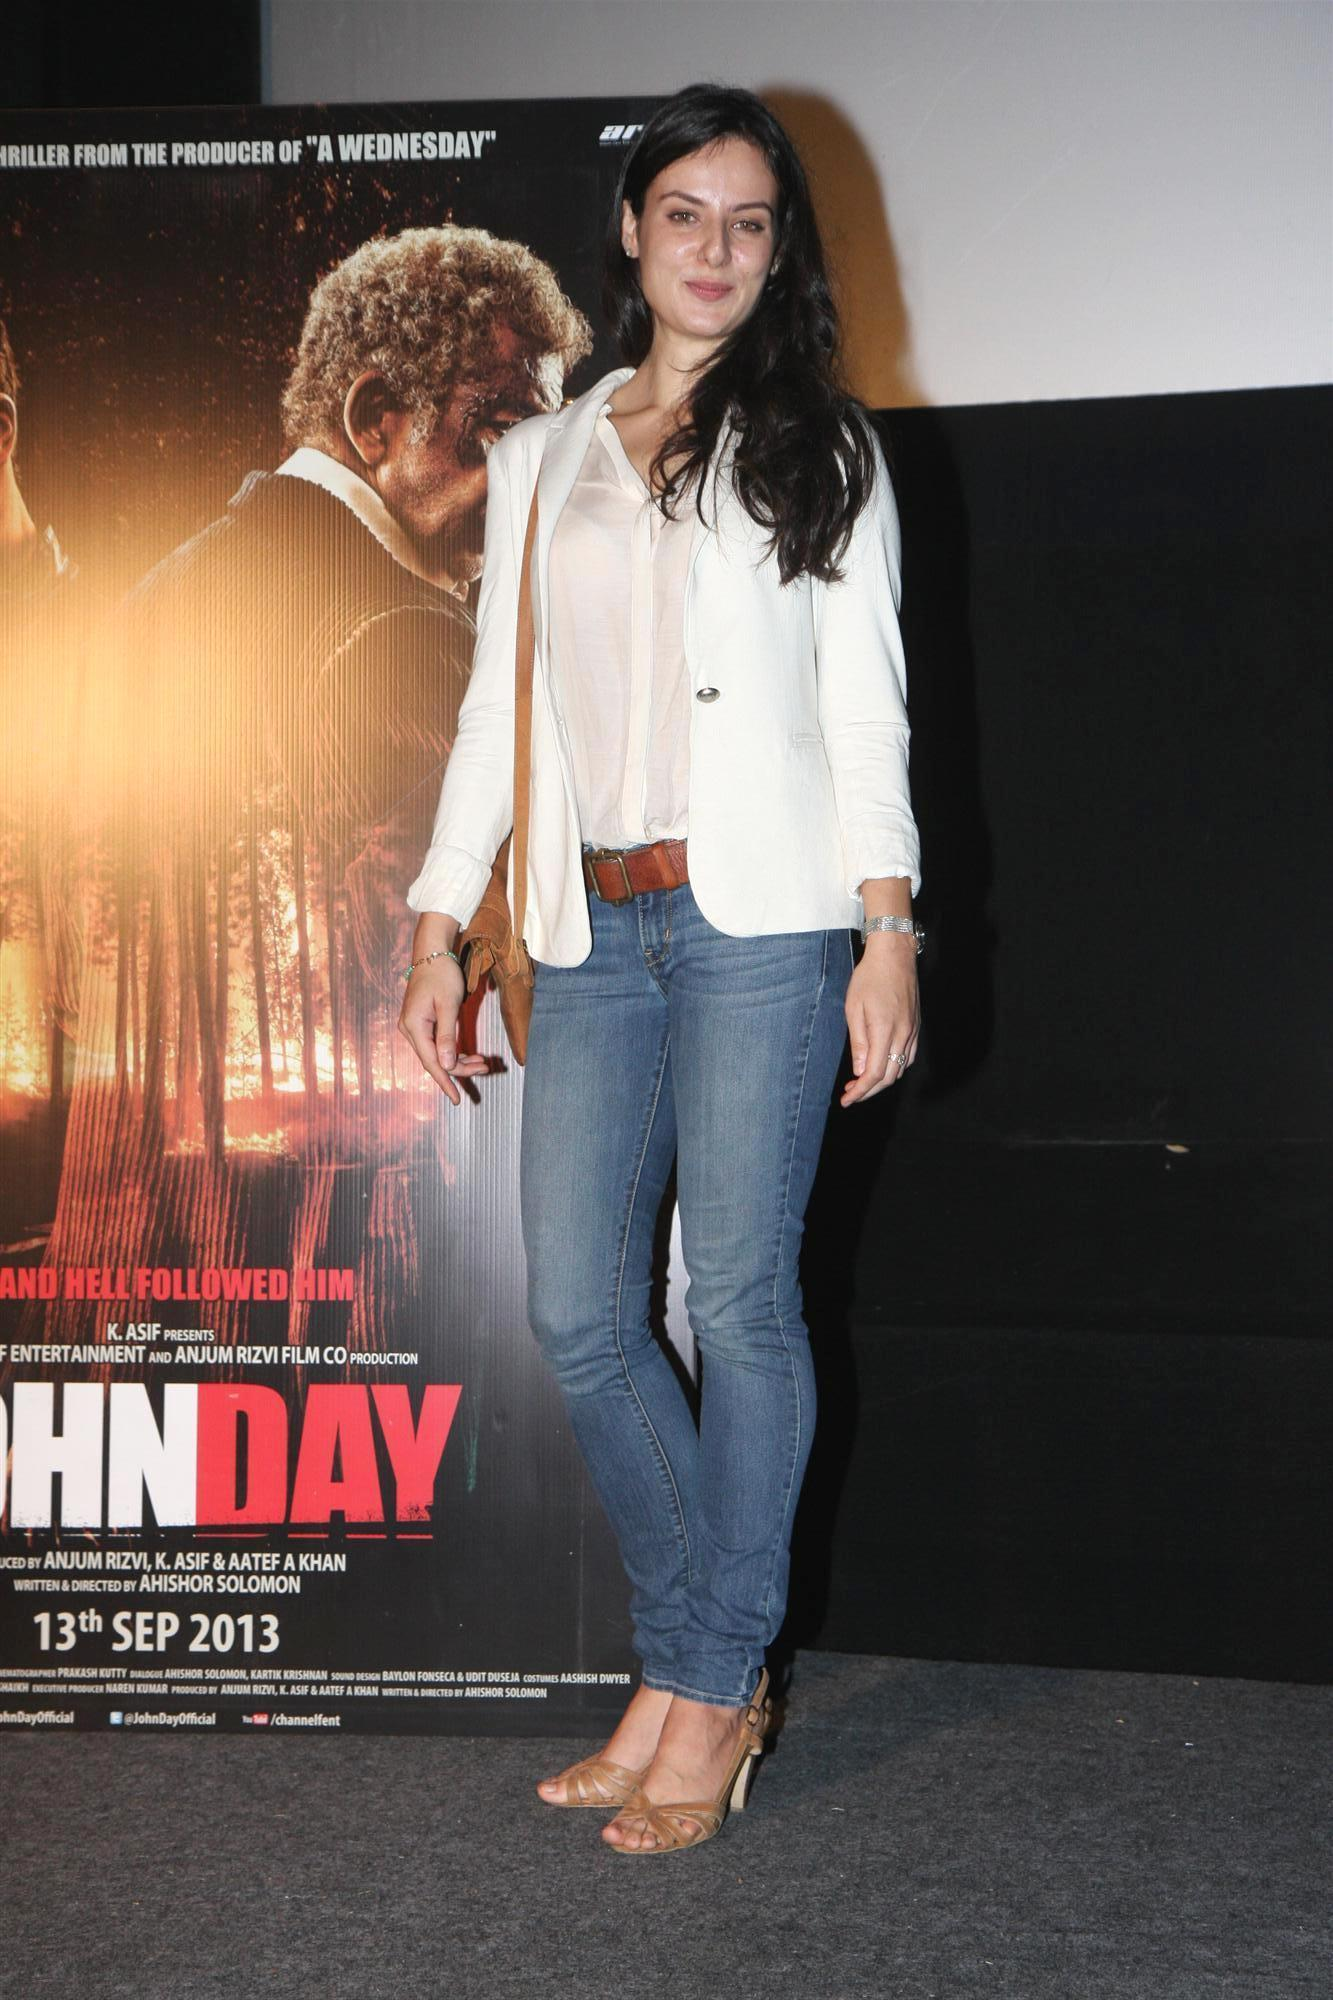 german actress elena kazan at film john day press meet in mumbai  german actress elena kazan at film john day press meet in mumbai 1